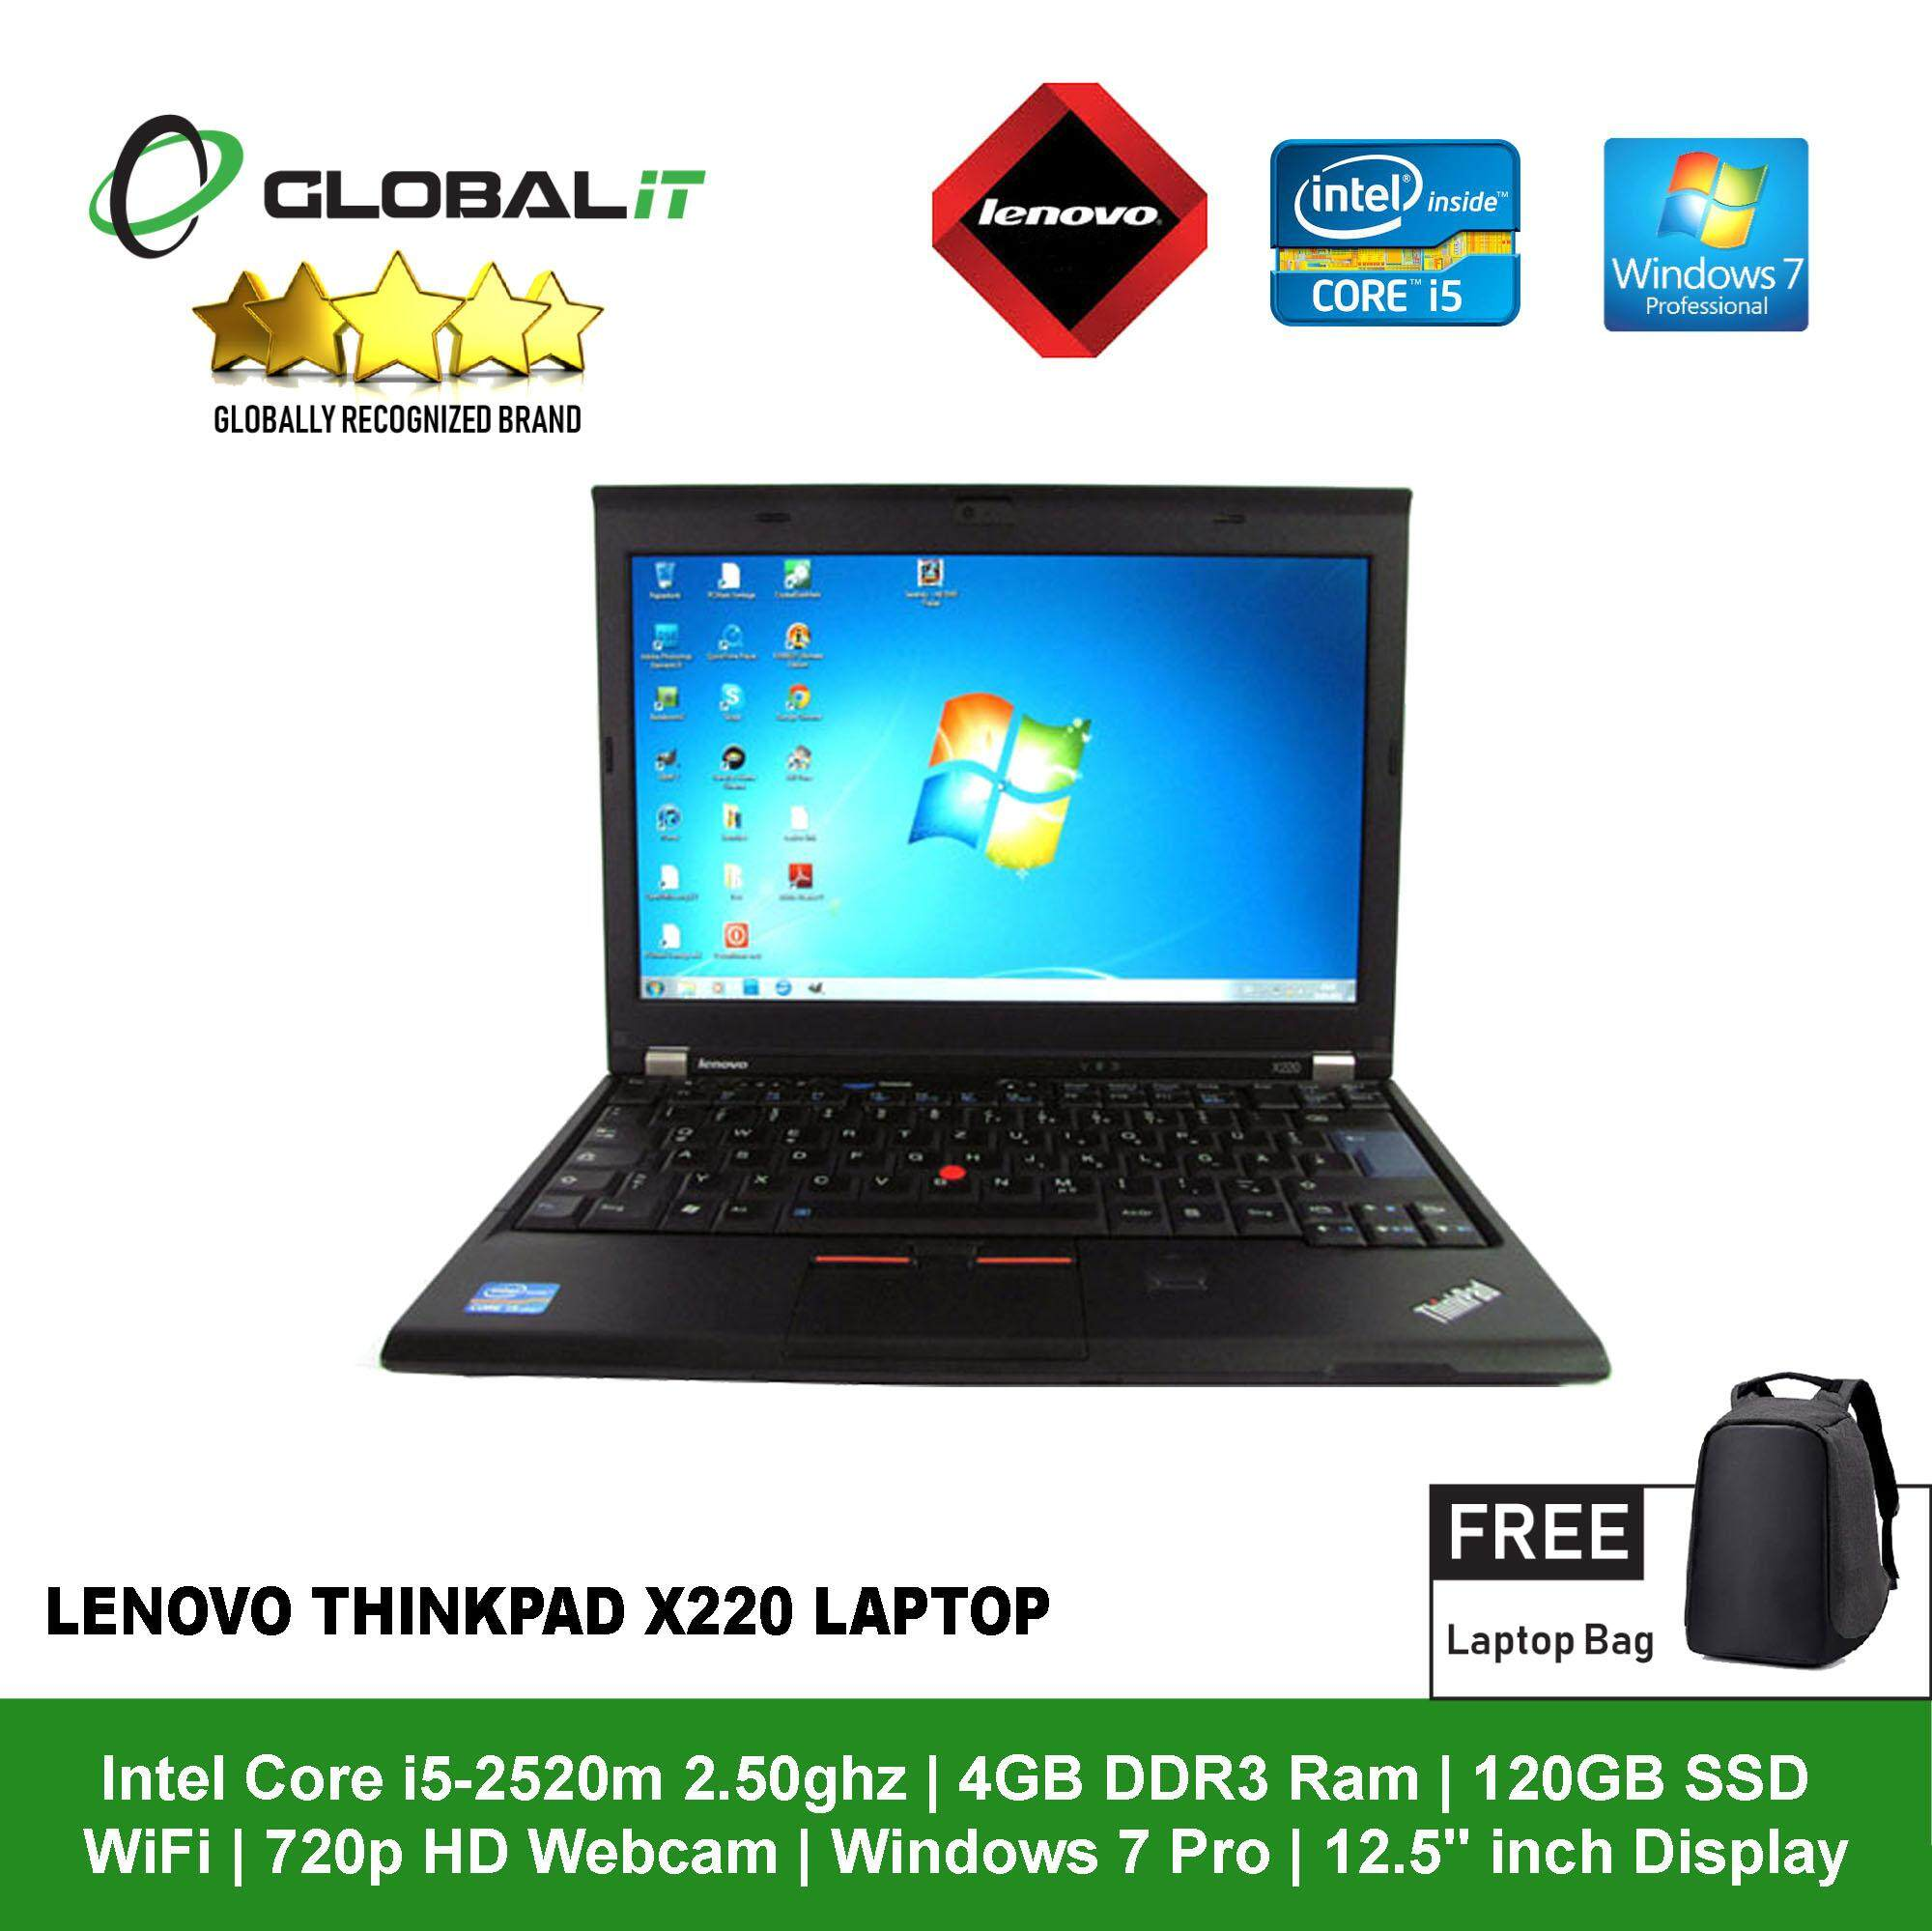 (Refurbished Notebook) Lenovo Thinkpad X220 Laptop / 12.5 inch Display / Intel Core i5-2520M / 4GB DDR3 Ram / 120GB SSD / WiFi / Windows 7 Pro / Webcam Malaysia